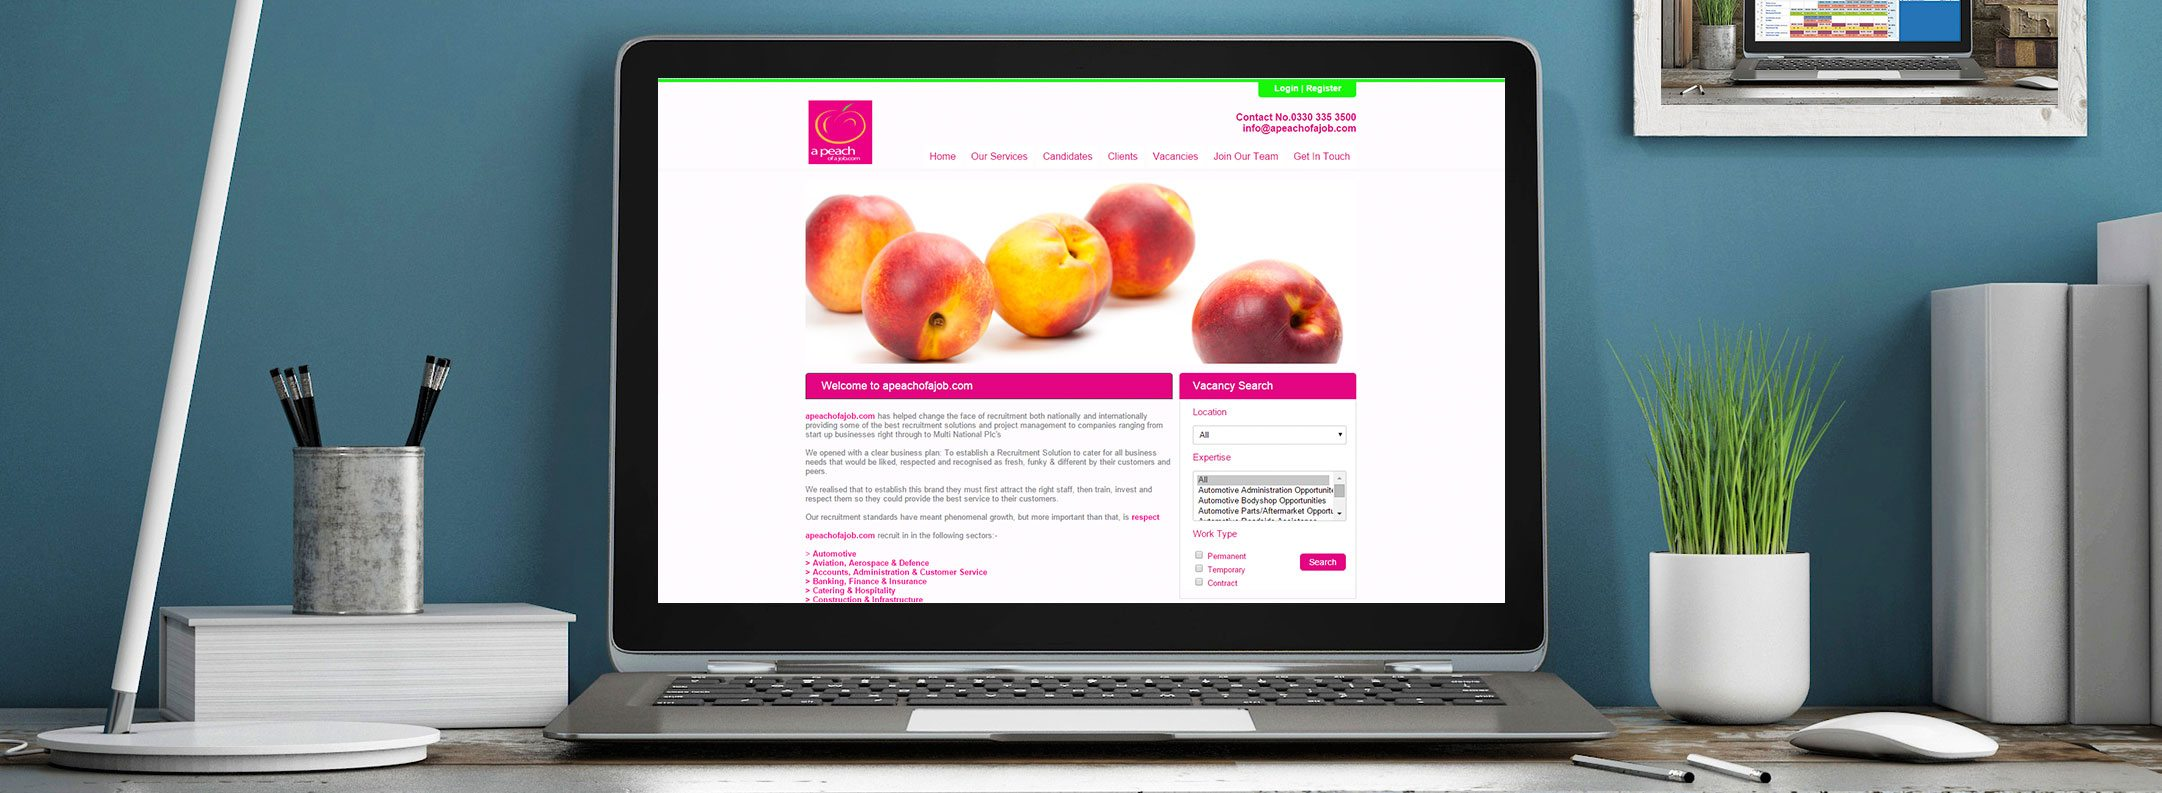 Website-banner-peach